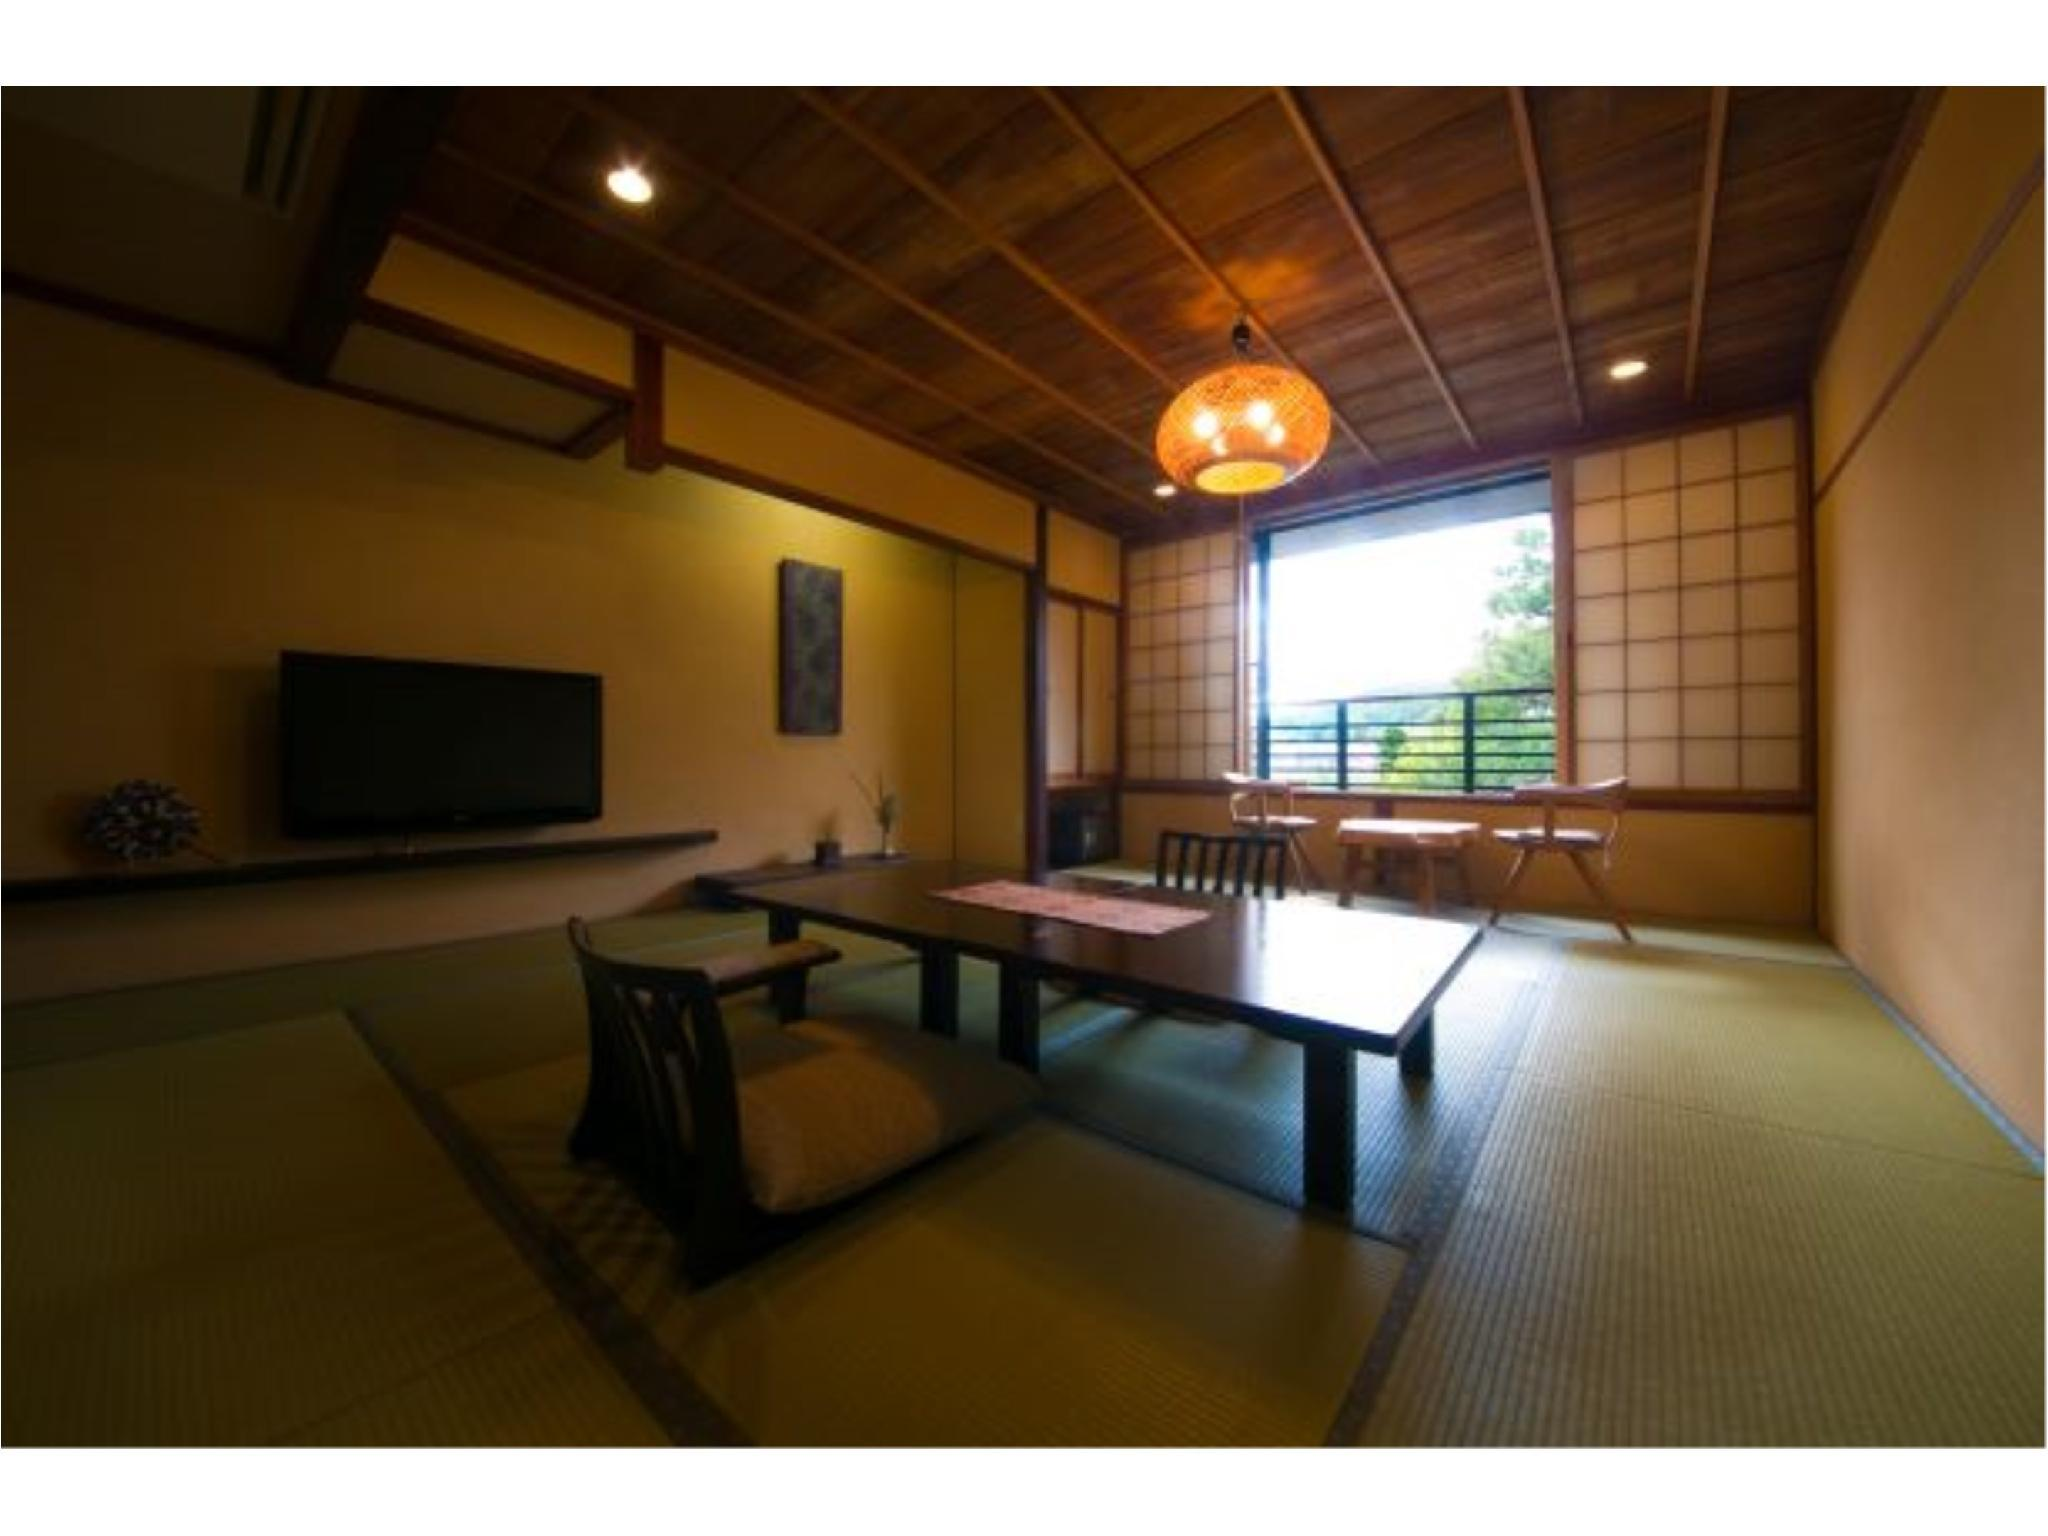 和式房 (Standard Japanese Room with Futon (Japanese traditional style of bedding) )